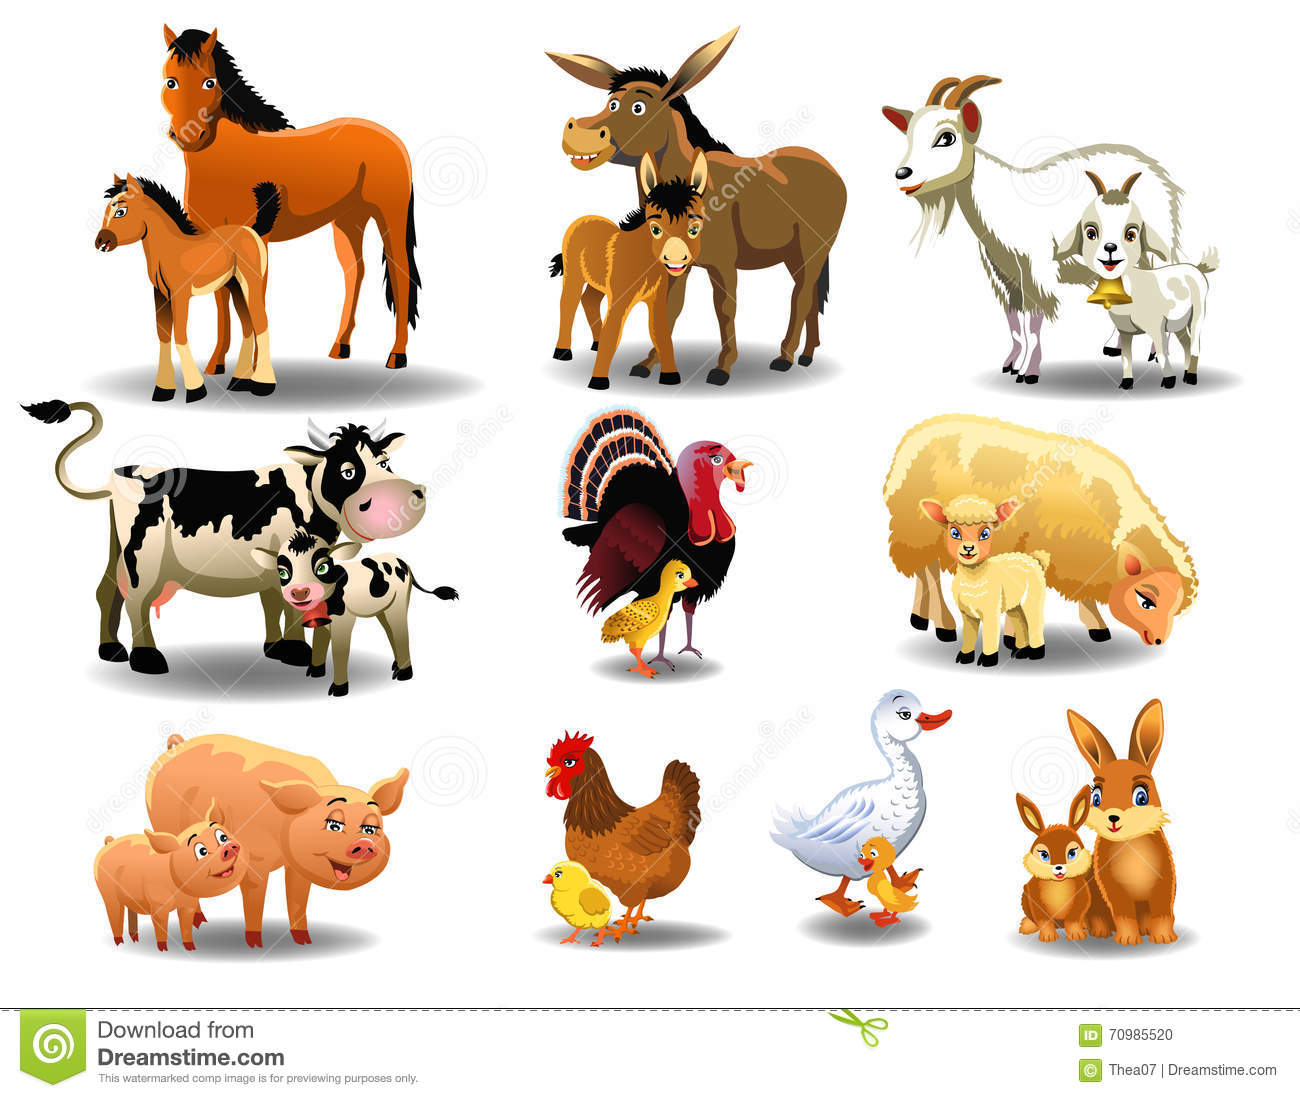 Their Cartoons Illustrations Amp Vector Stock Images